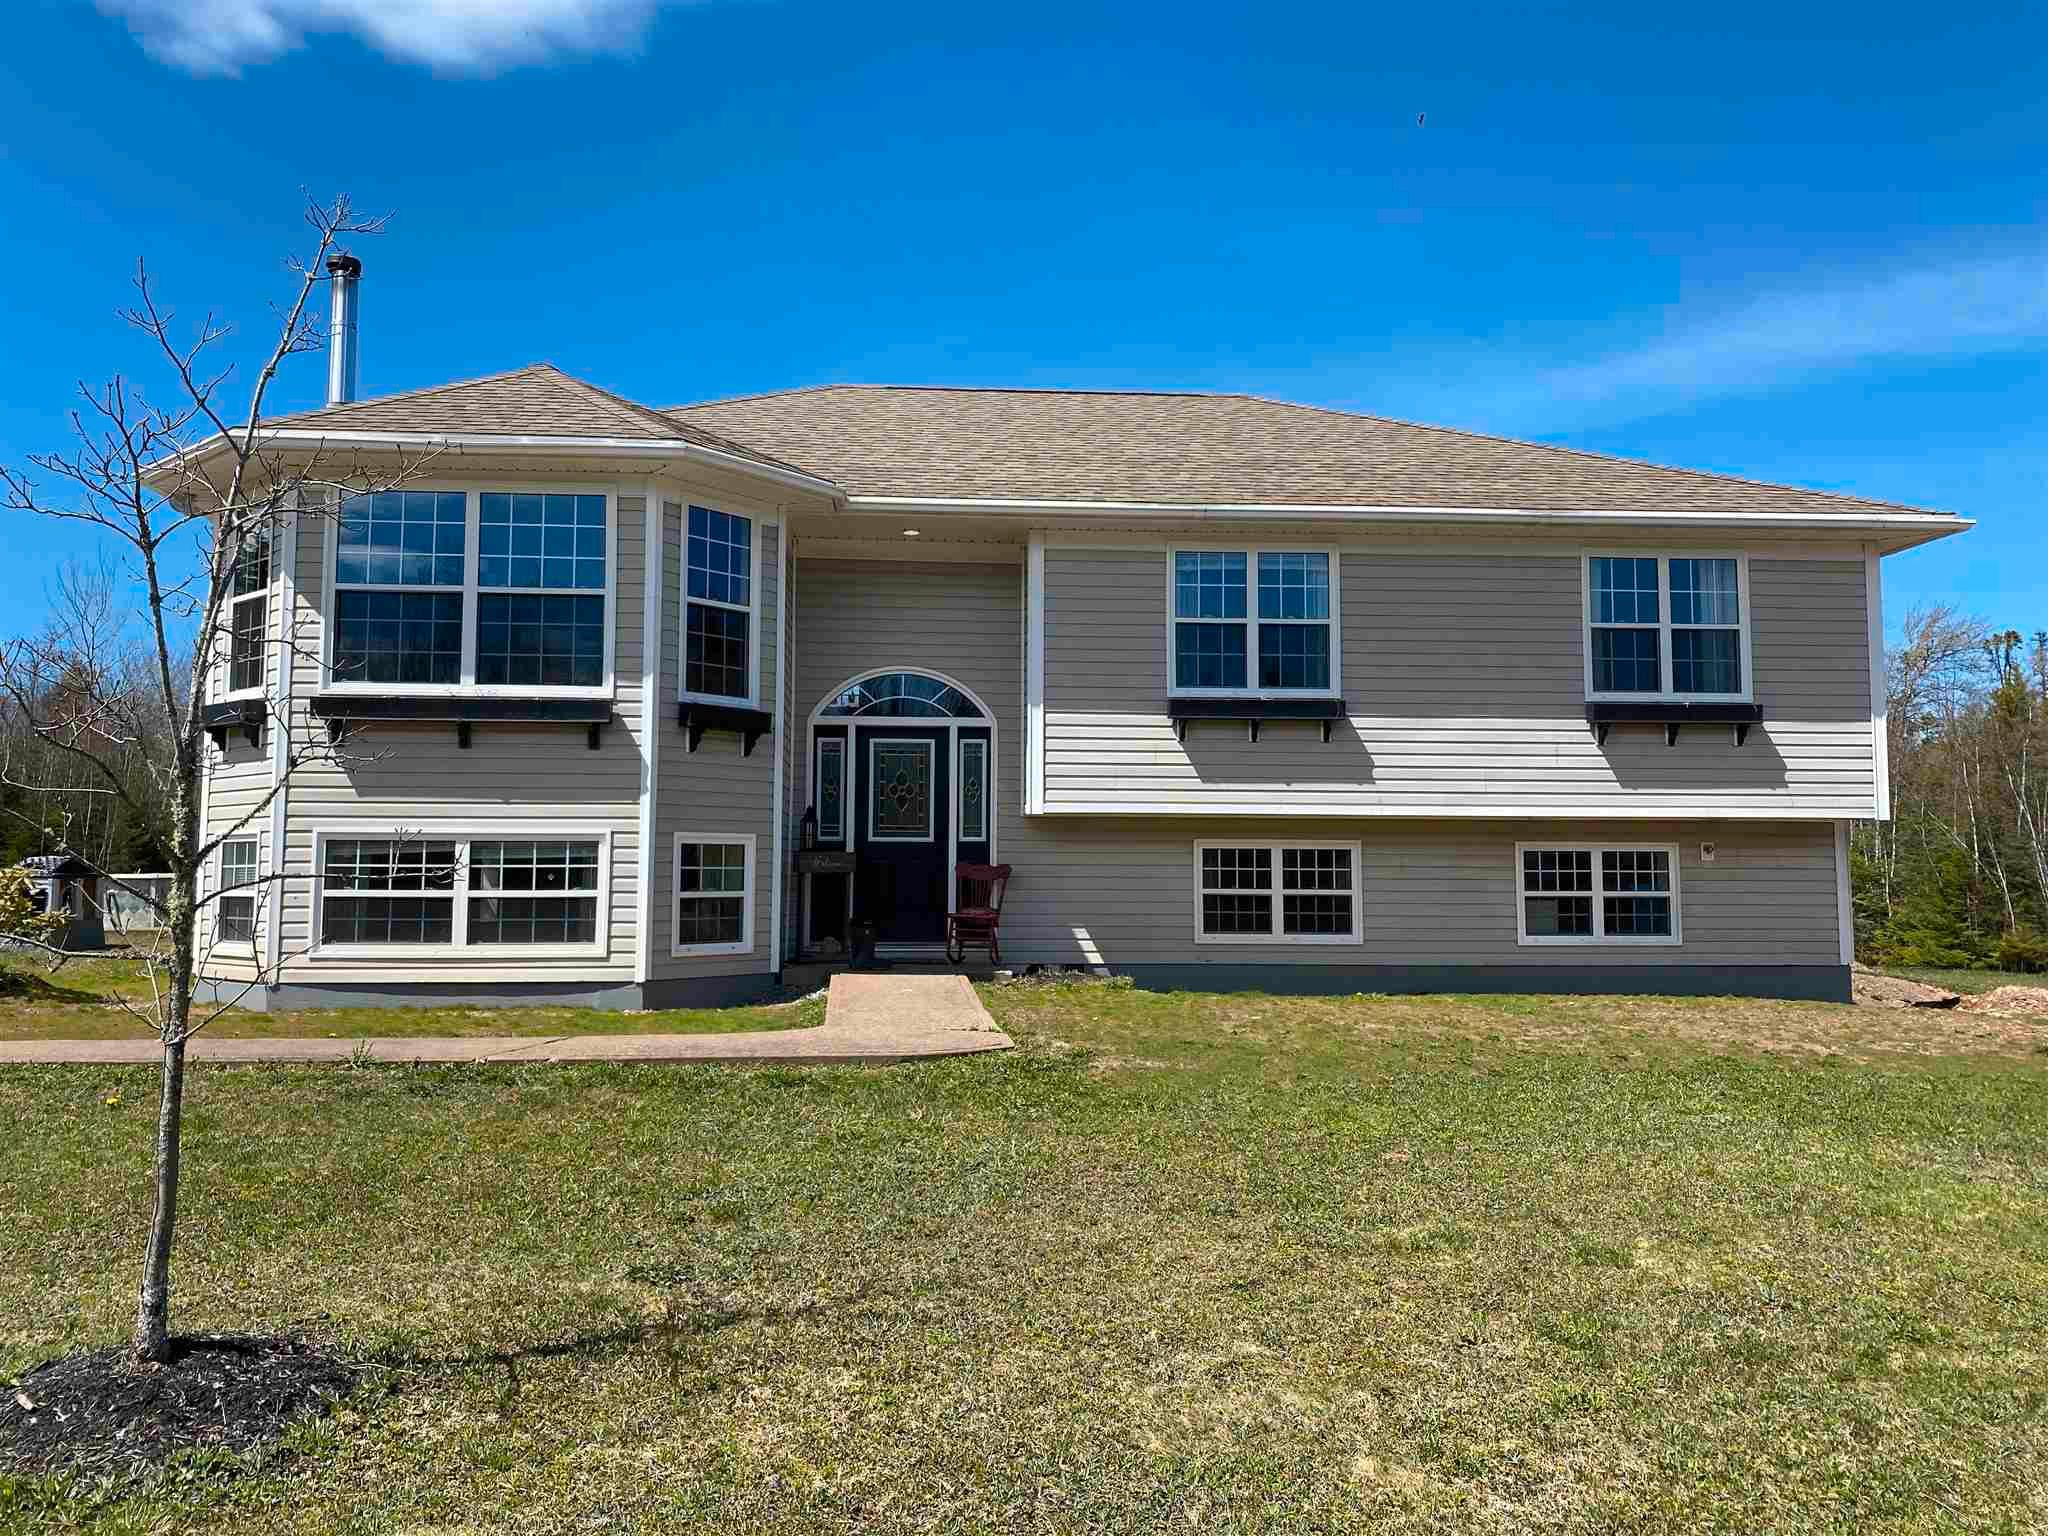 Main Photo: 267 Mark Road in Riverton: 108-Rural Pictou County Residential for sale (Northern Region)  : MLS®# 202111233